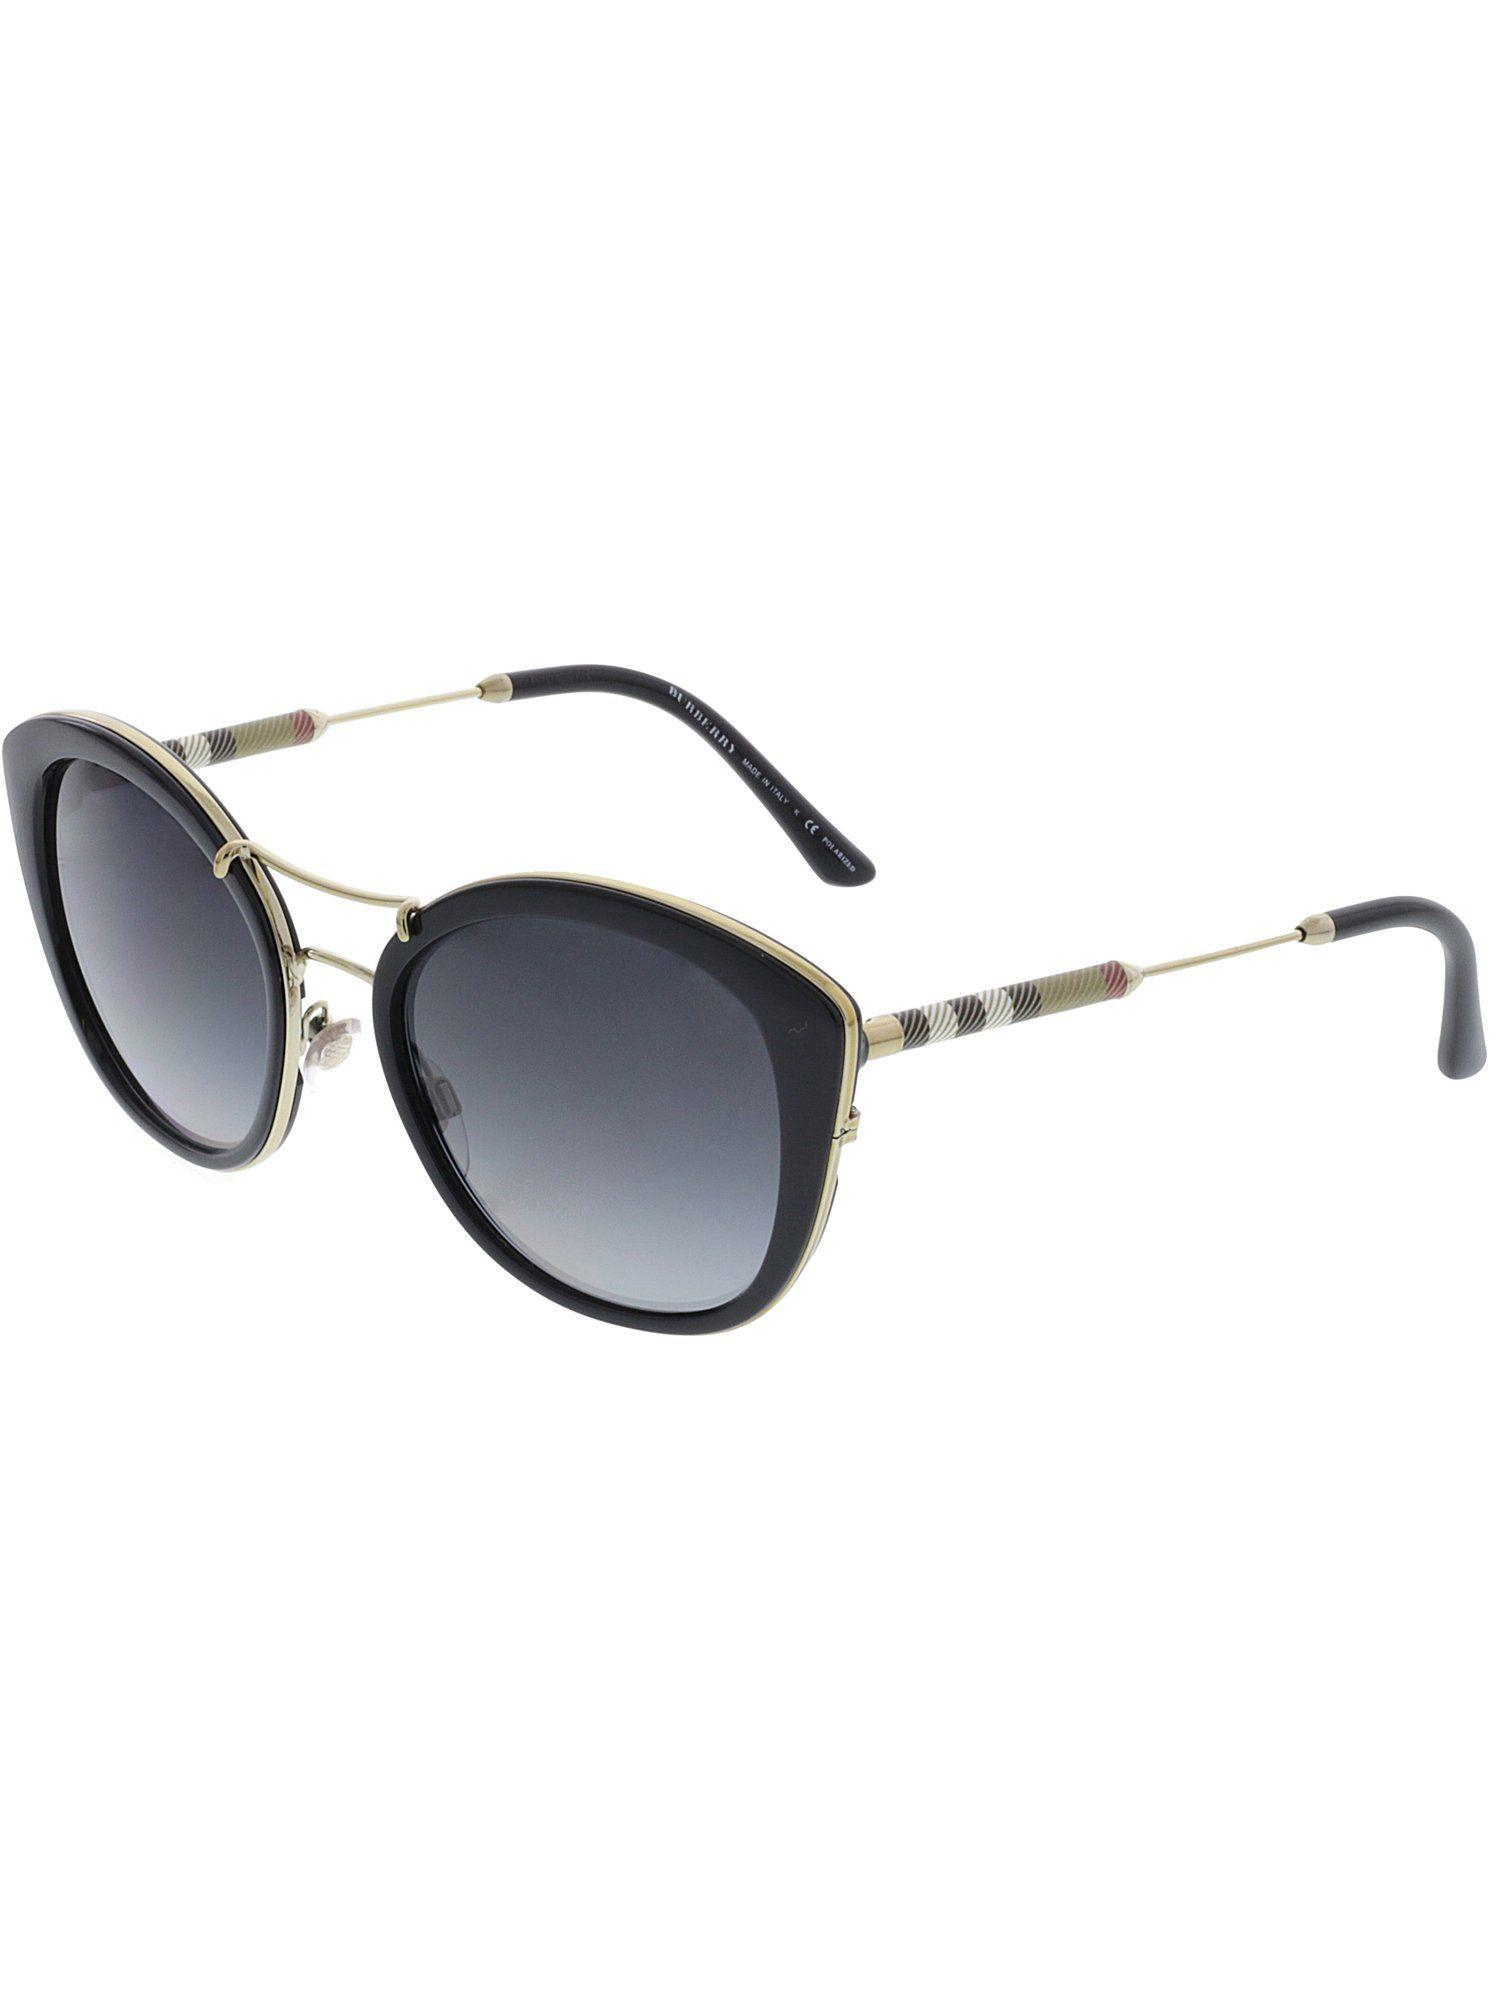 76bcb592b149 Lyst - Burberry Women's Polarized Be4251q-3001t3-53 Black Cat Eye ...